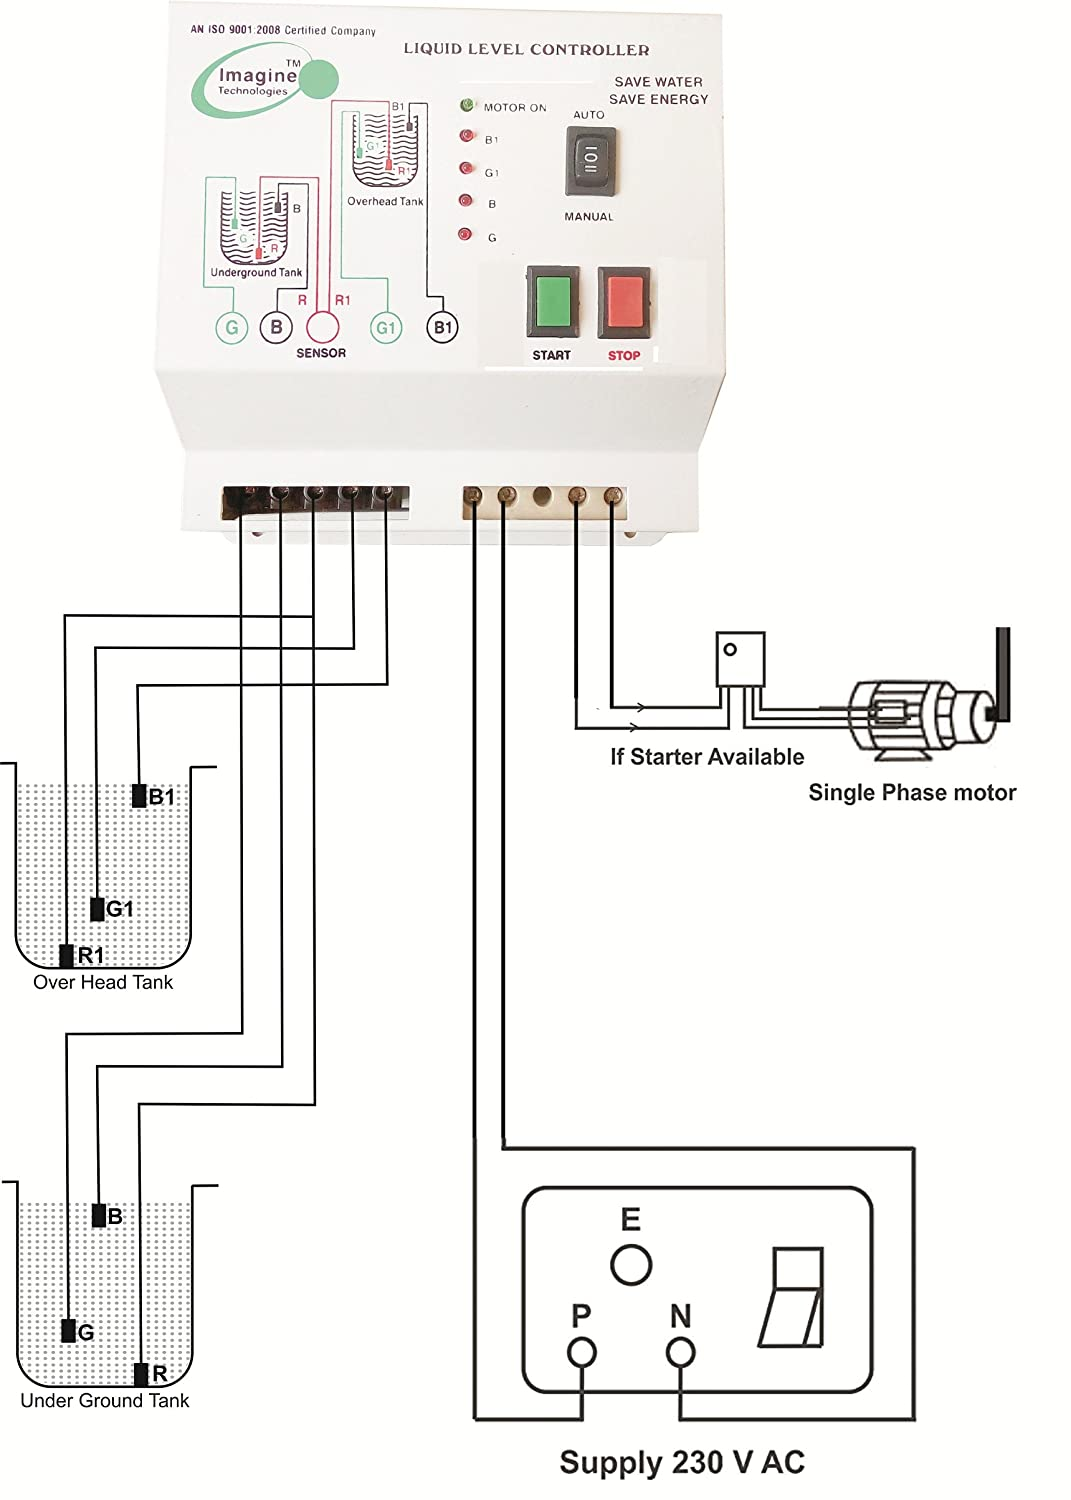 Imagine Technologies Fully Automatic Water Level Controller With Up Lowcost Power Buzzer Circuit Diagram Centre And Down Tank Sensor White Industrial Scientific